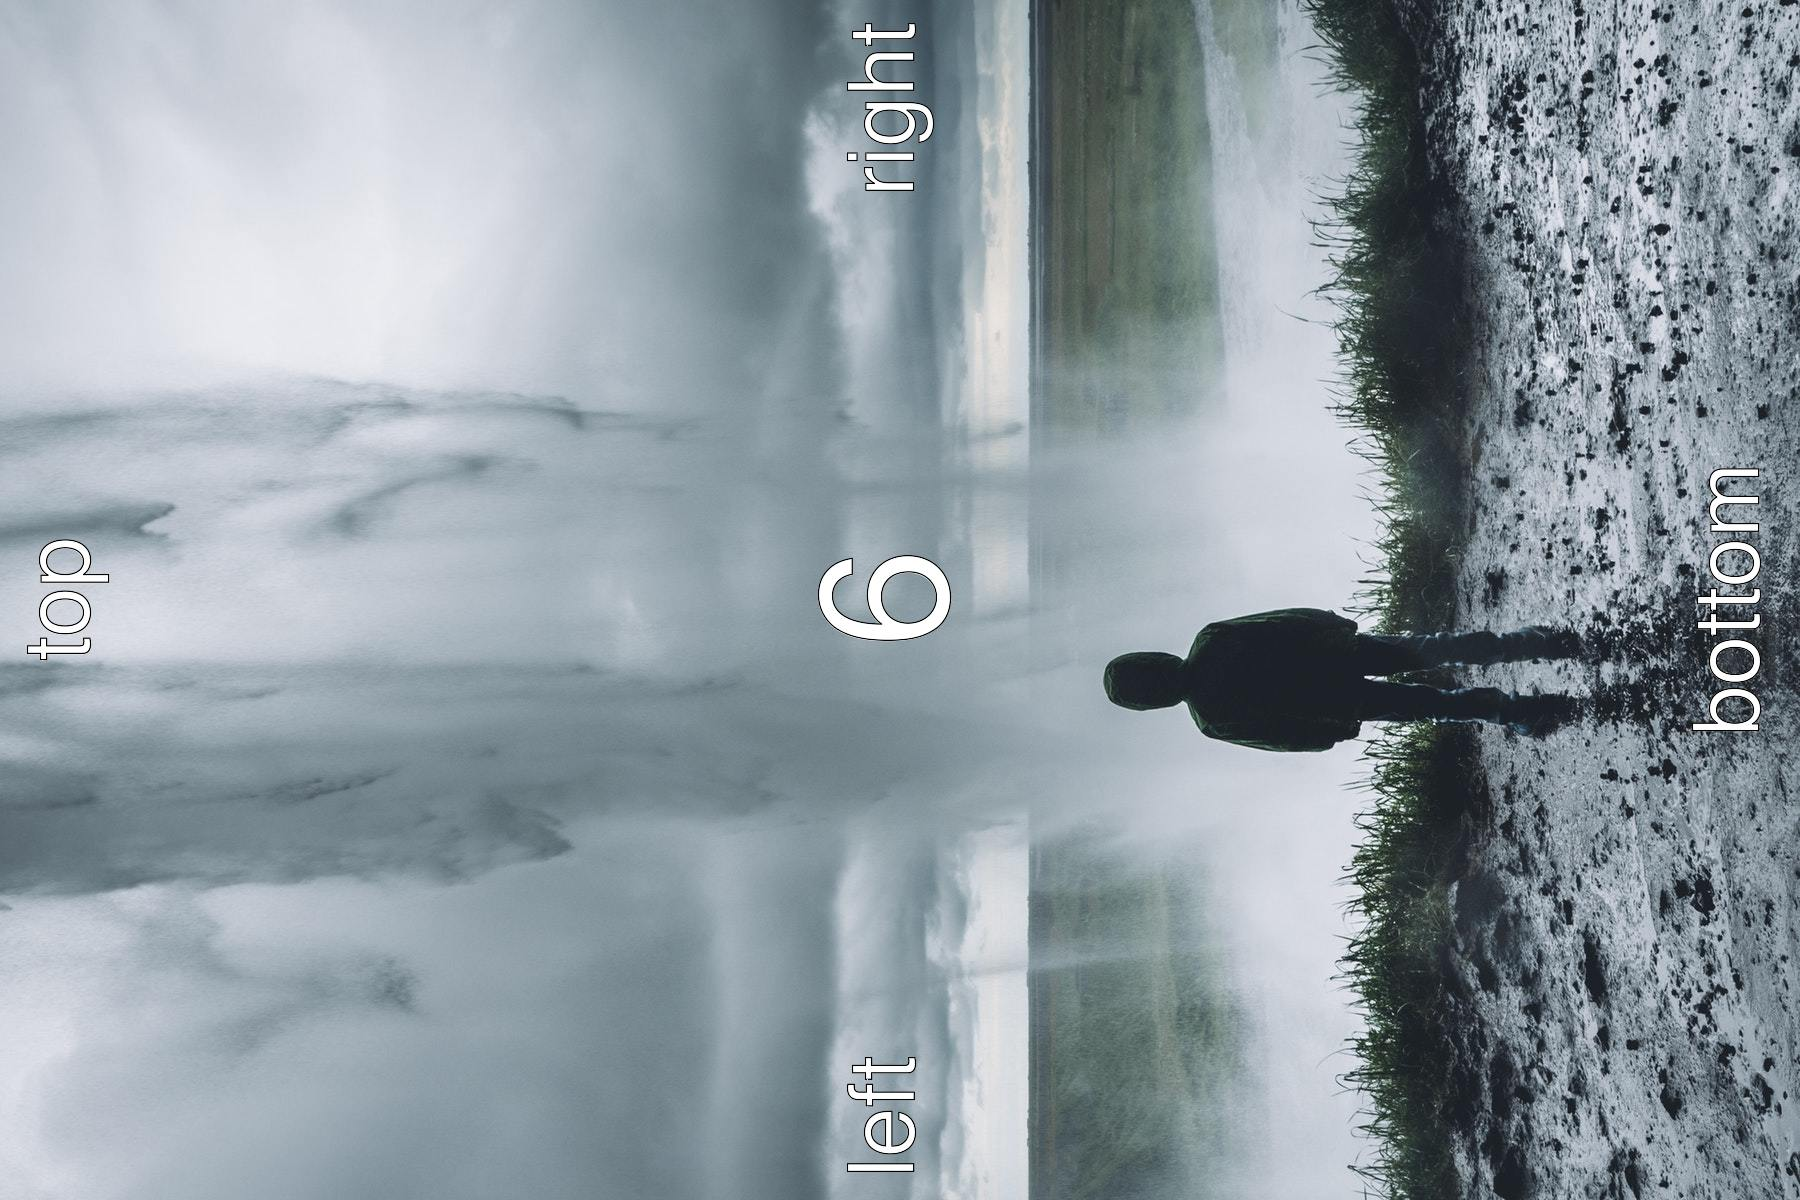 Young person behind a waterfall. Text on the image is top, right, bottom, left clockwise and in the center it says six.